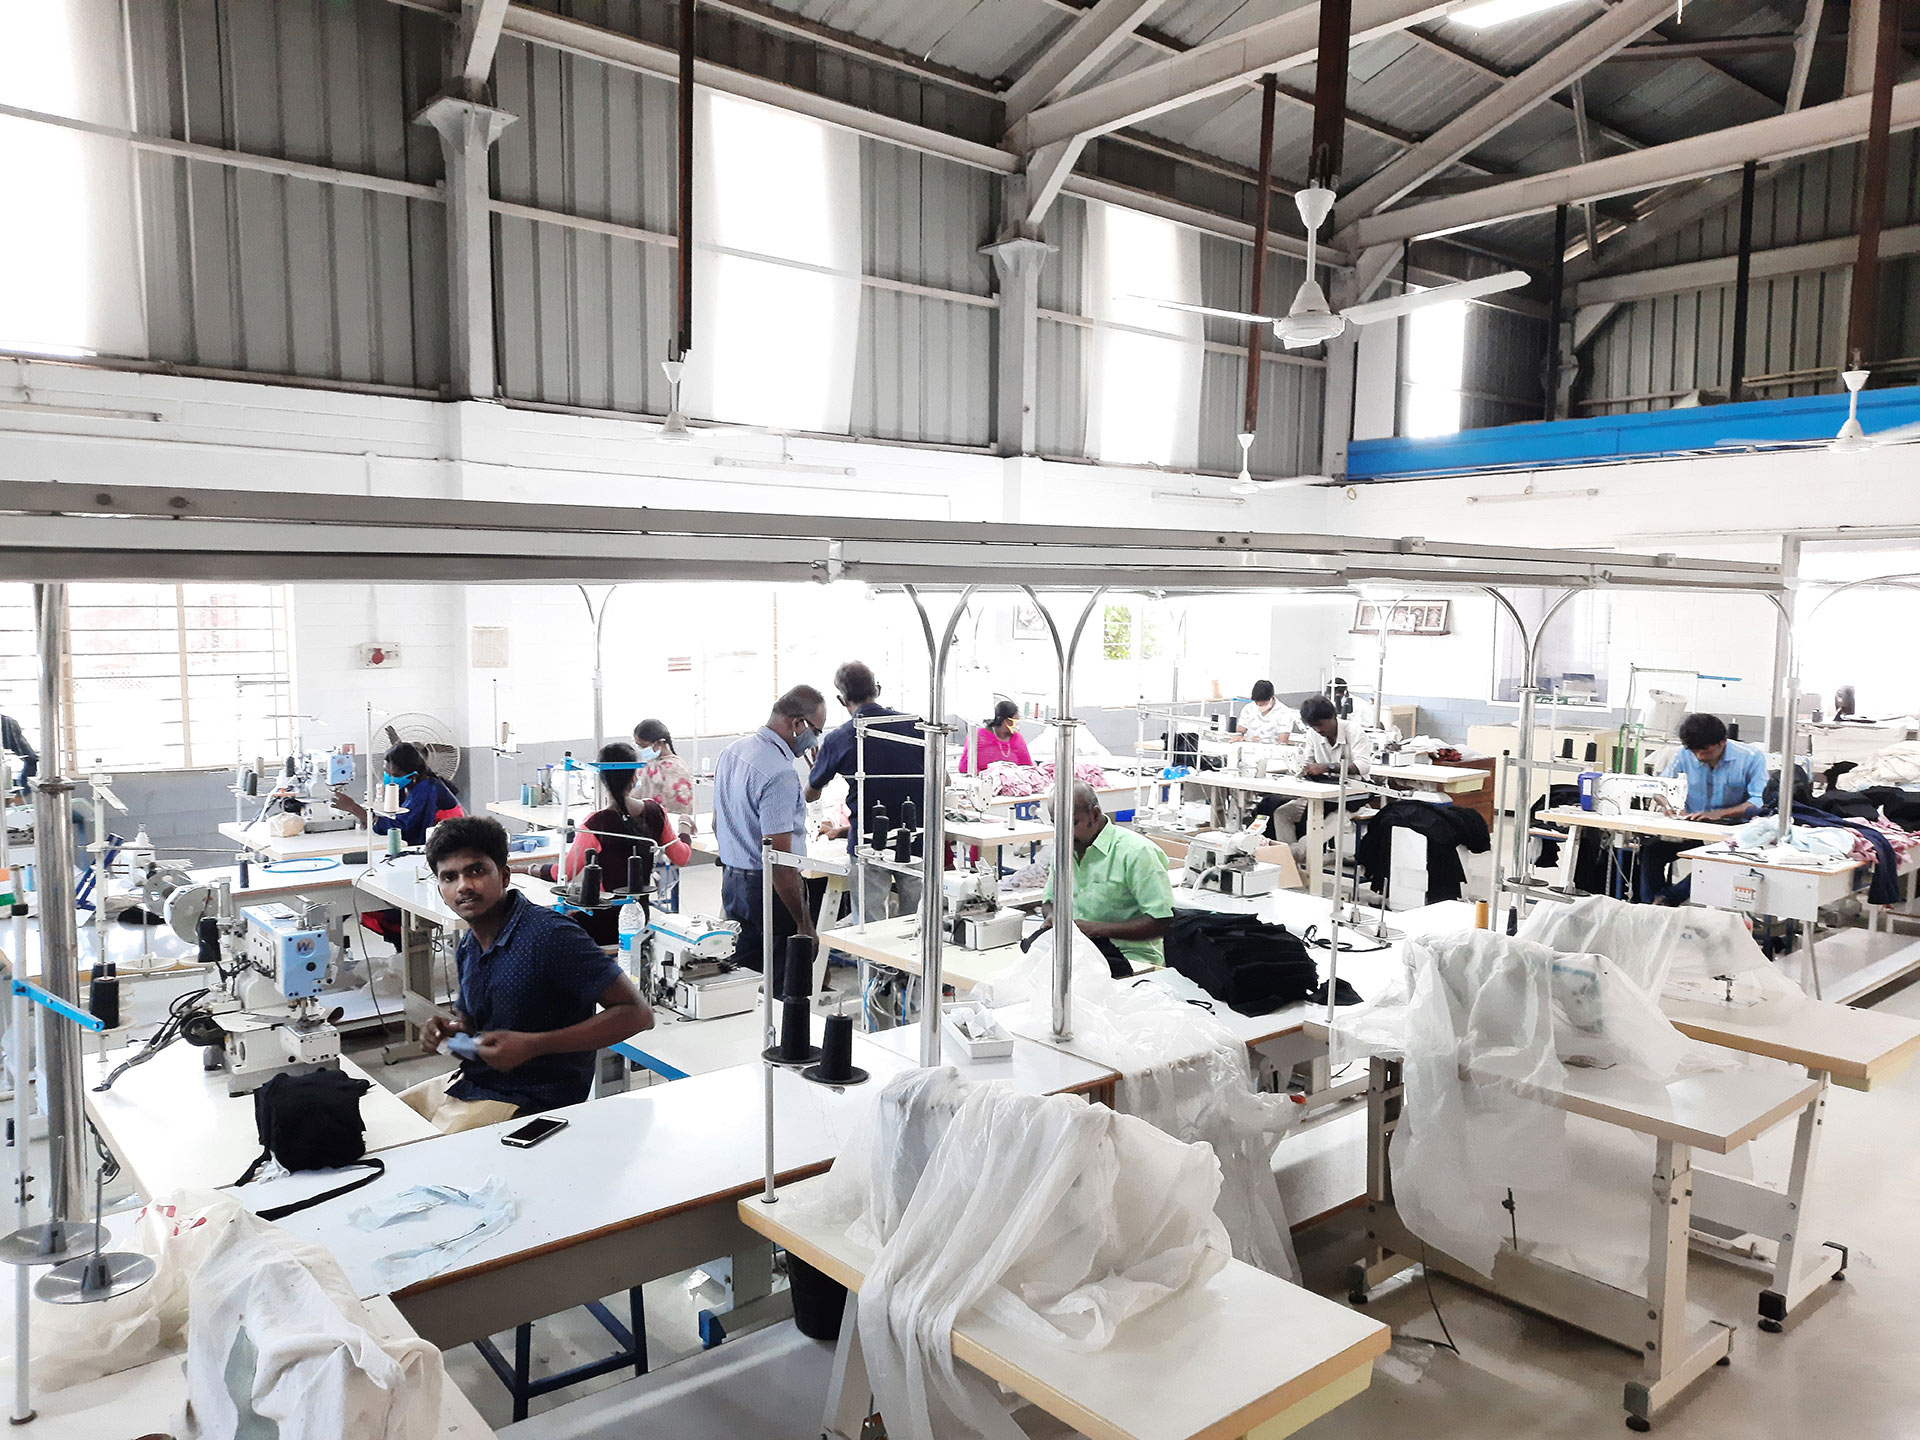 Ethical fashion manufacturing